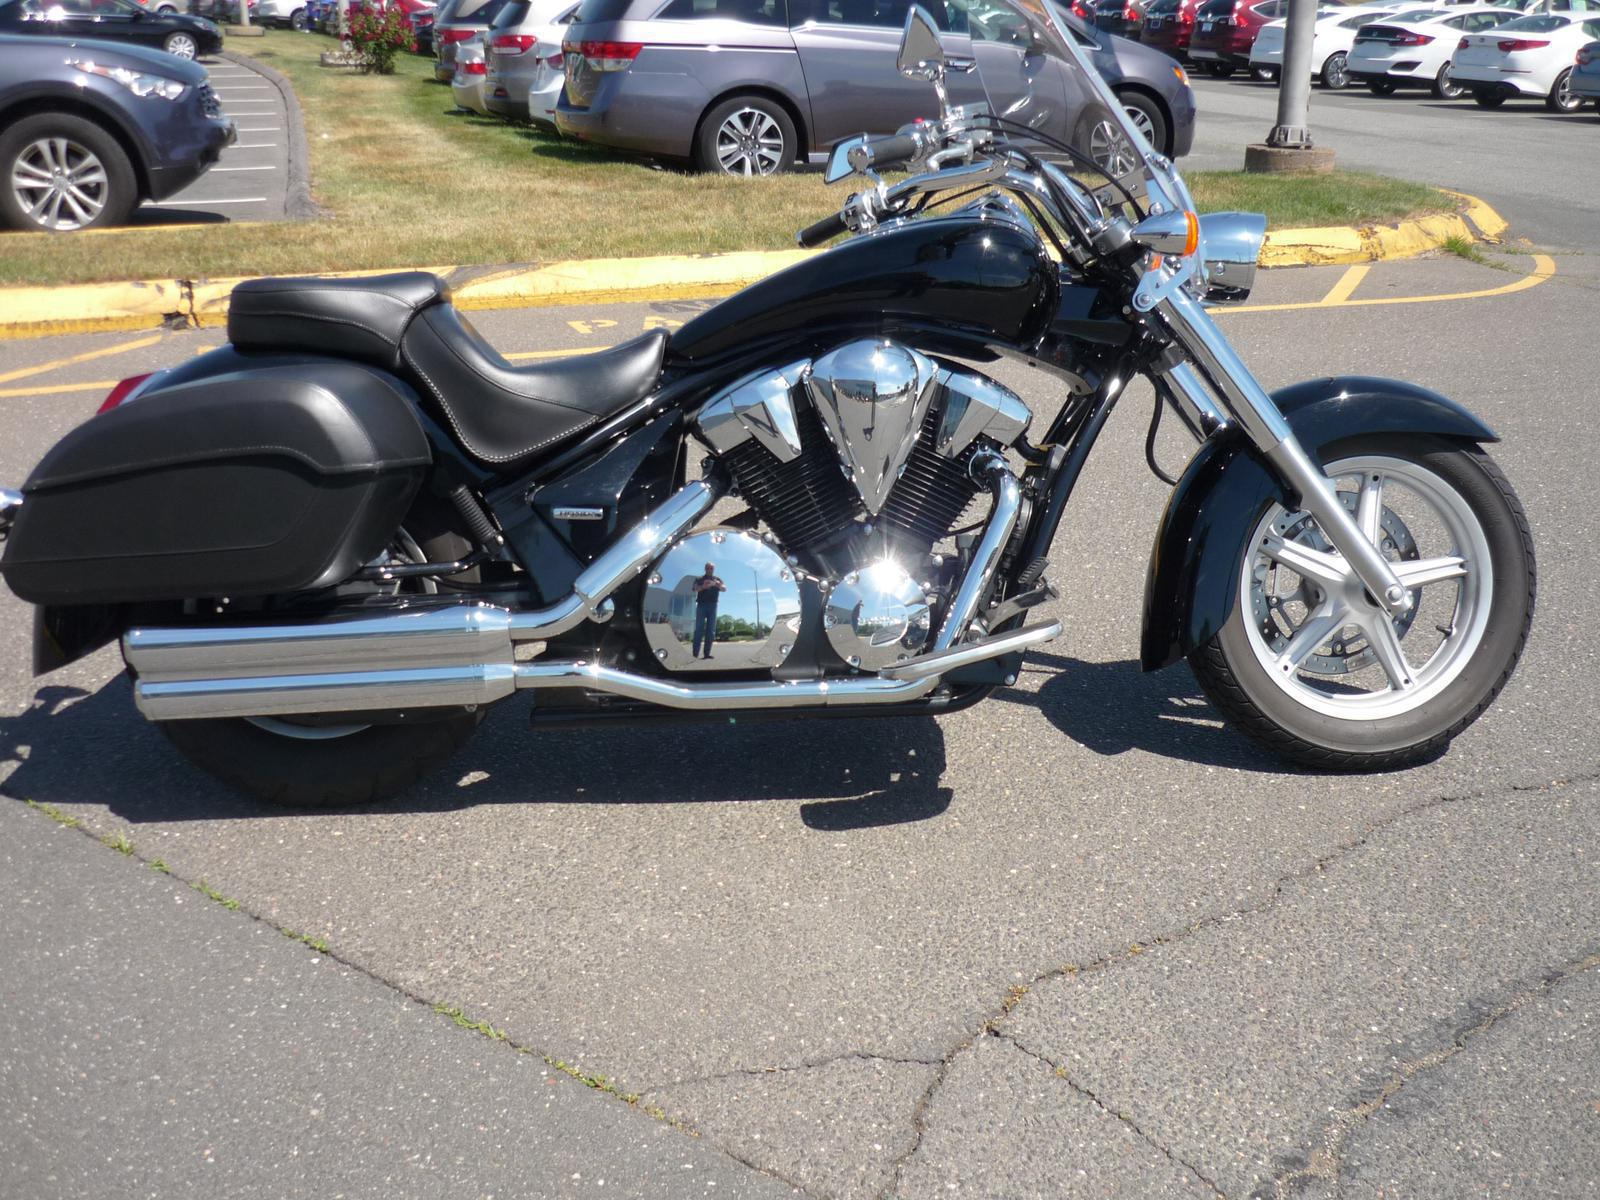 2011 Honda VT1300 Interstate for sale in Manchester, CT | Manchester ...